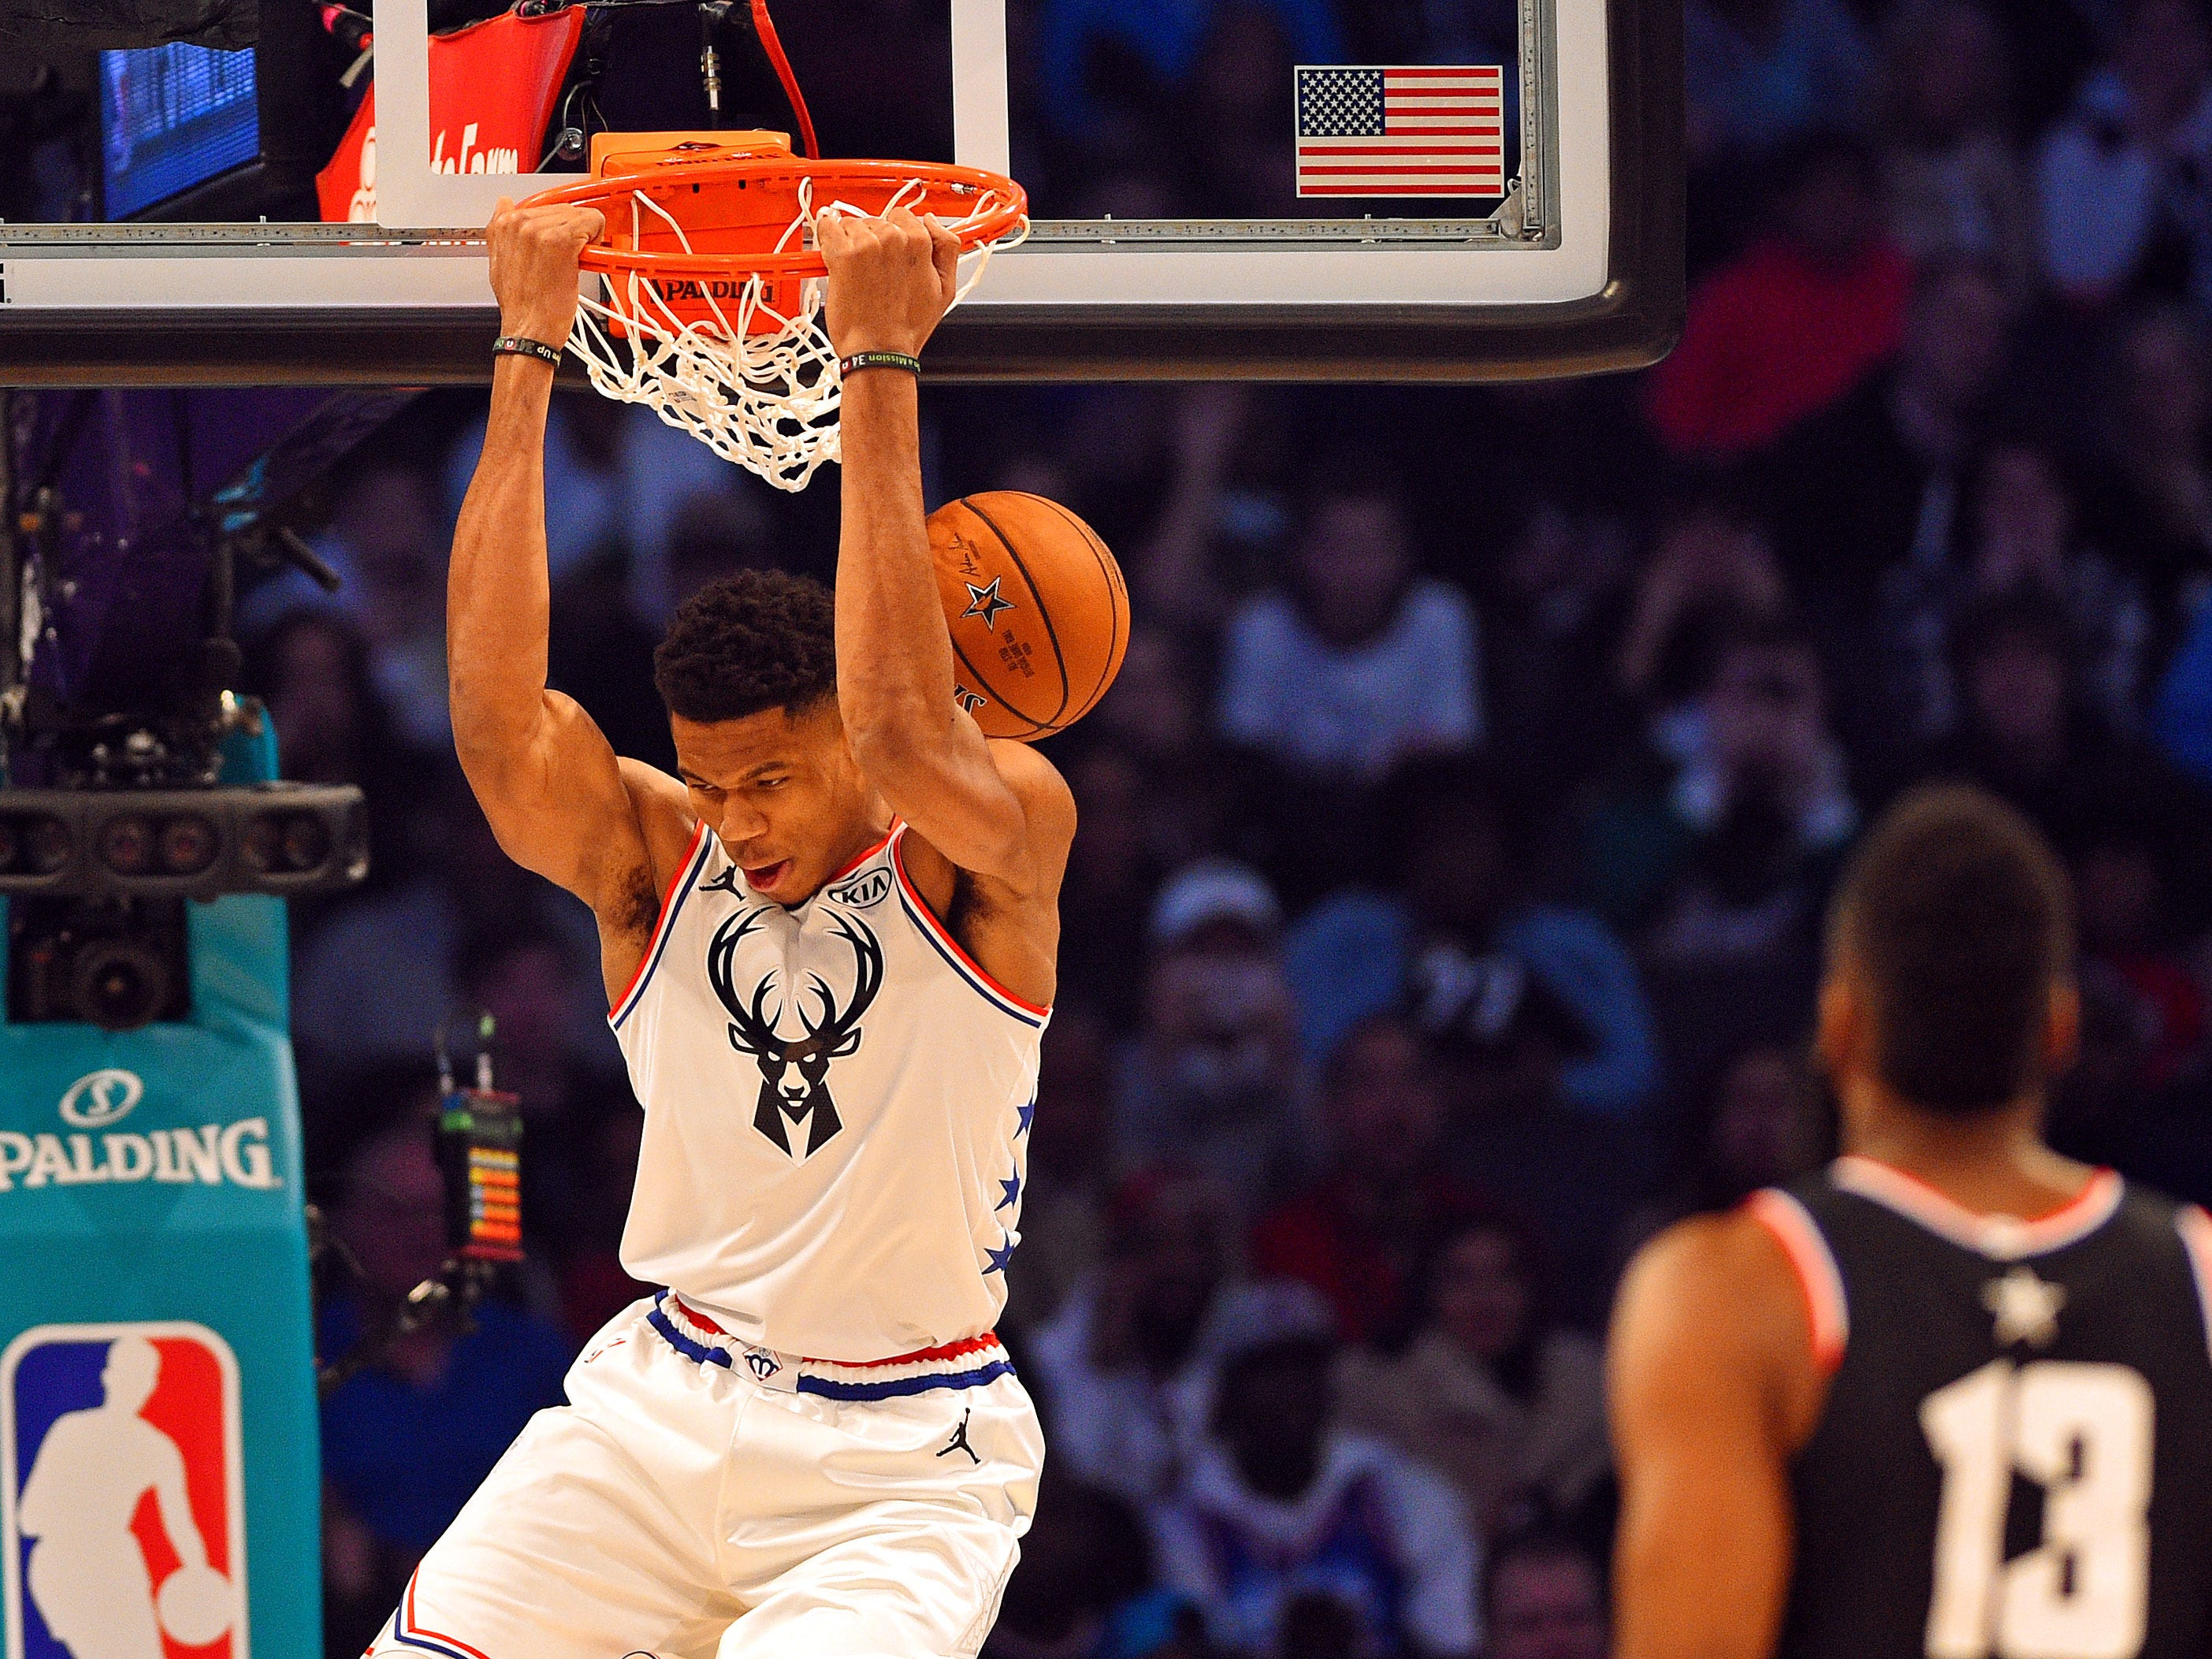 Giannis Antetokounmpo slams two of his 20 first-half points during the NBA All-Star Game.